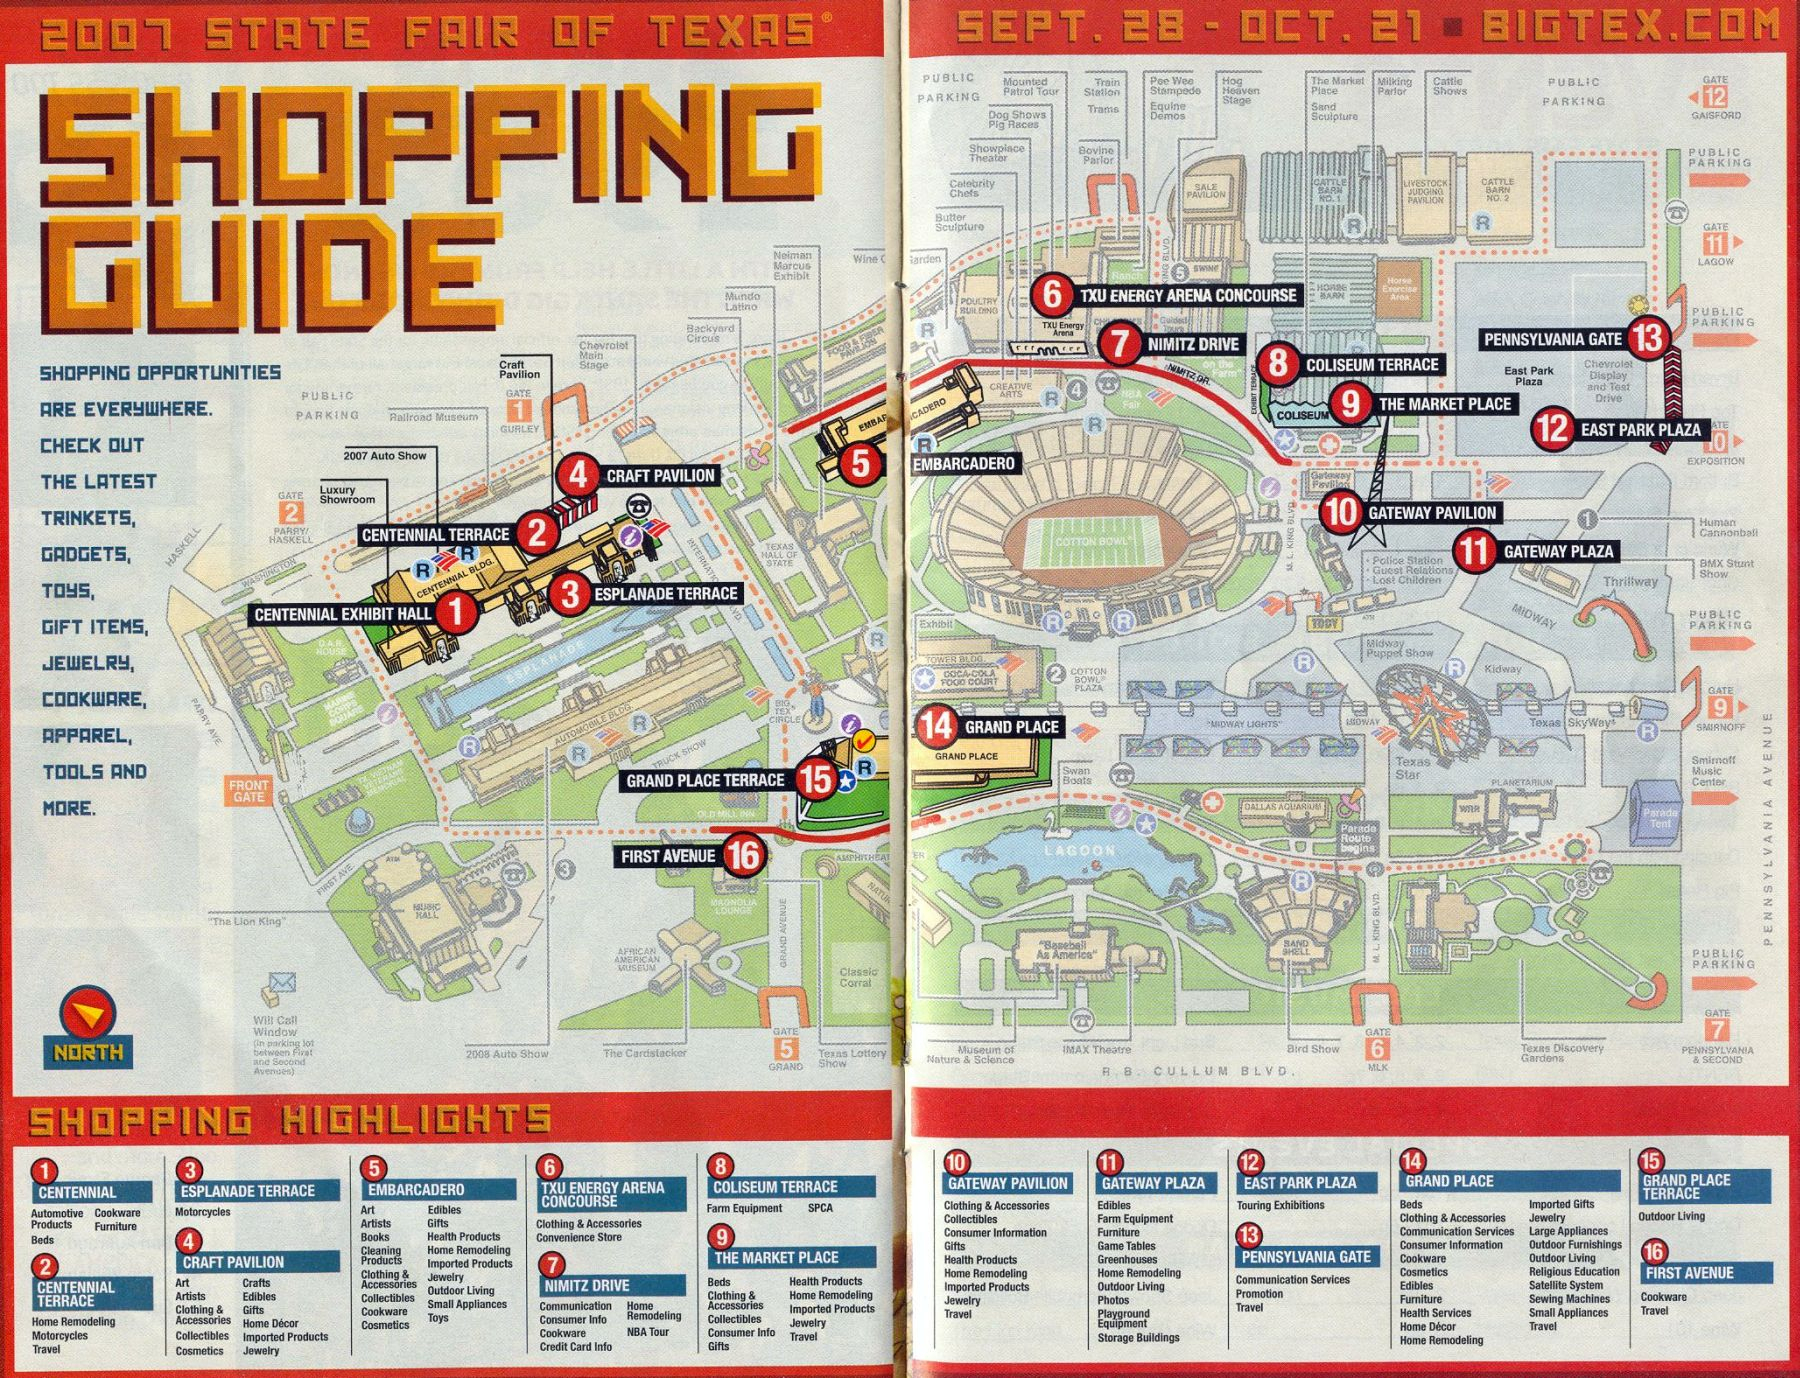 Texas State Fair Parking Map | Www.topsimages - Texas State Fair Parking Map